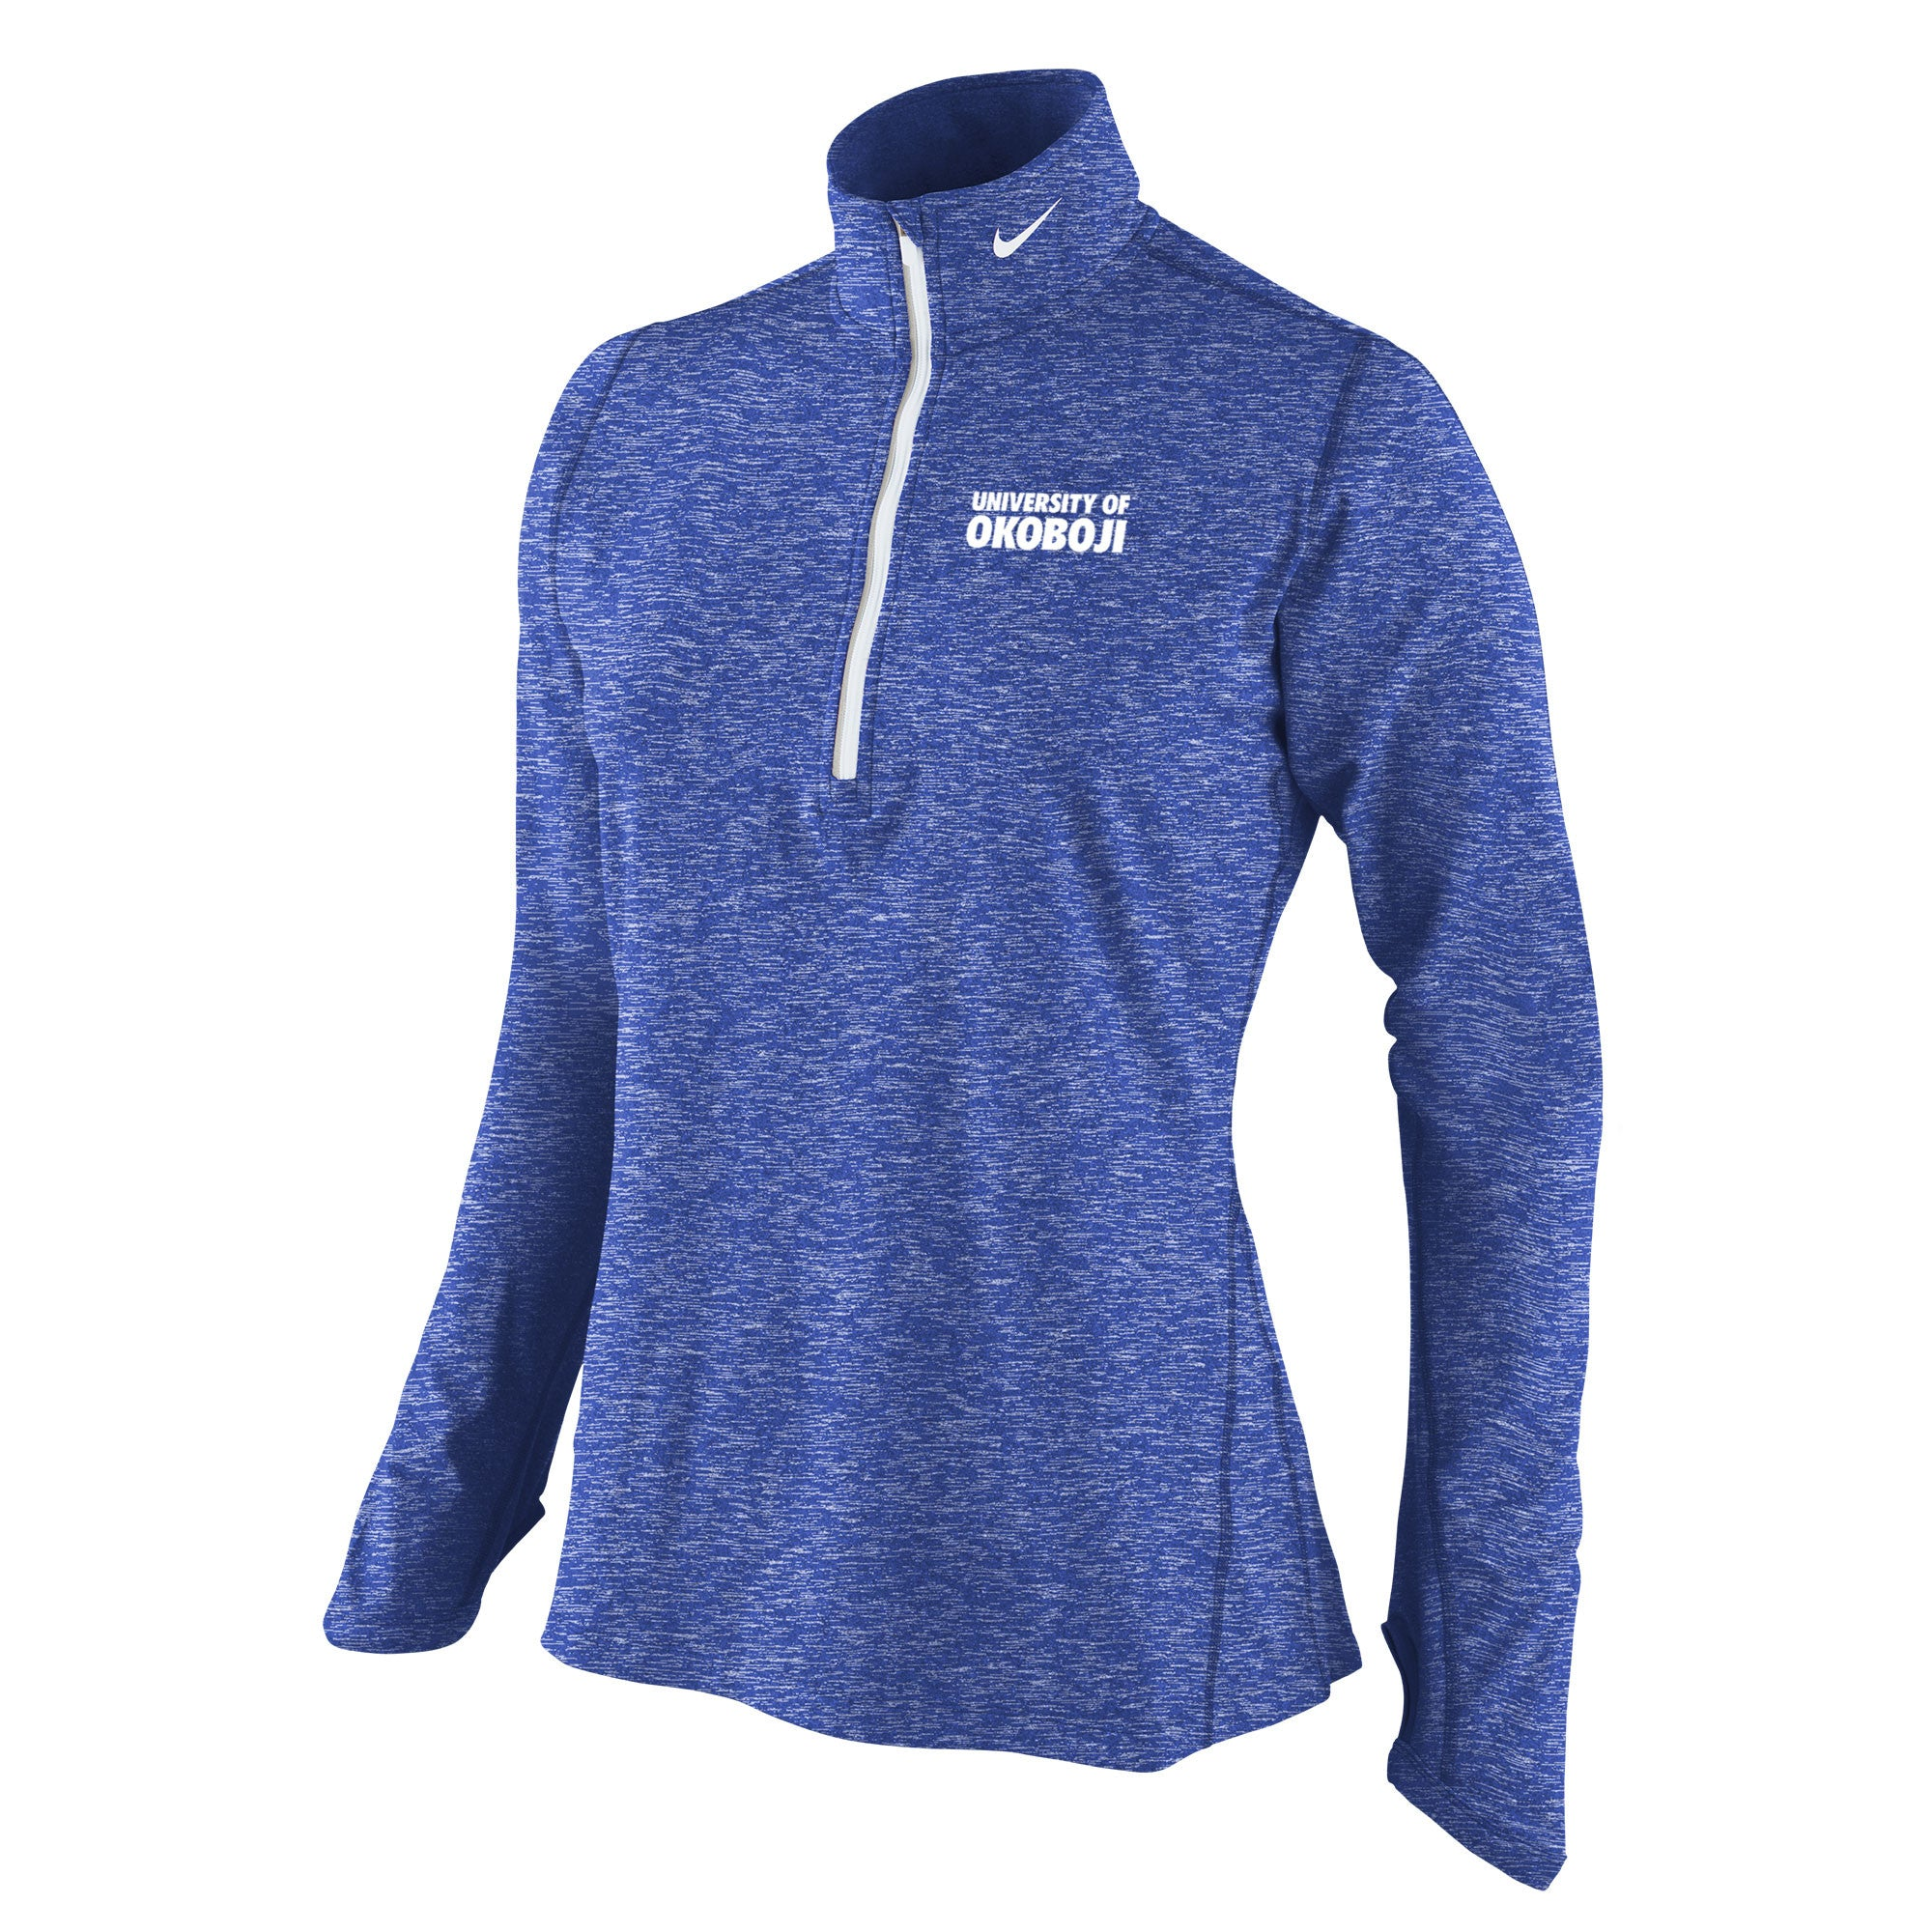 Ladies Heather Element 1/4 Zip Top - Heathered Royal Okoboji